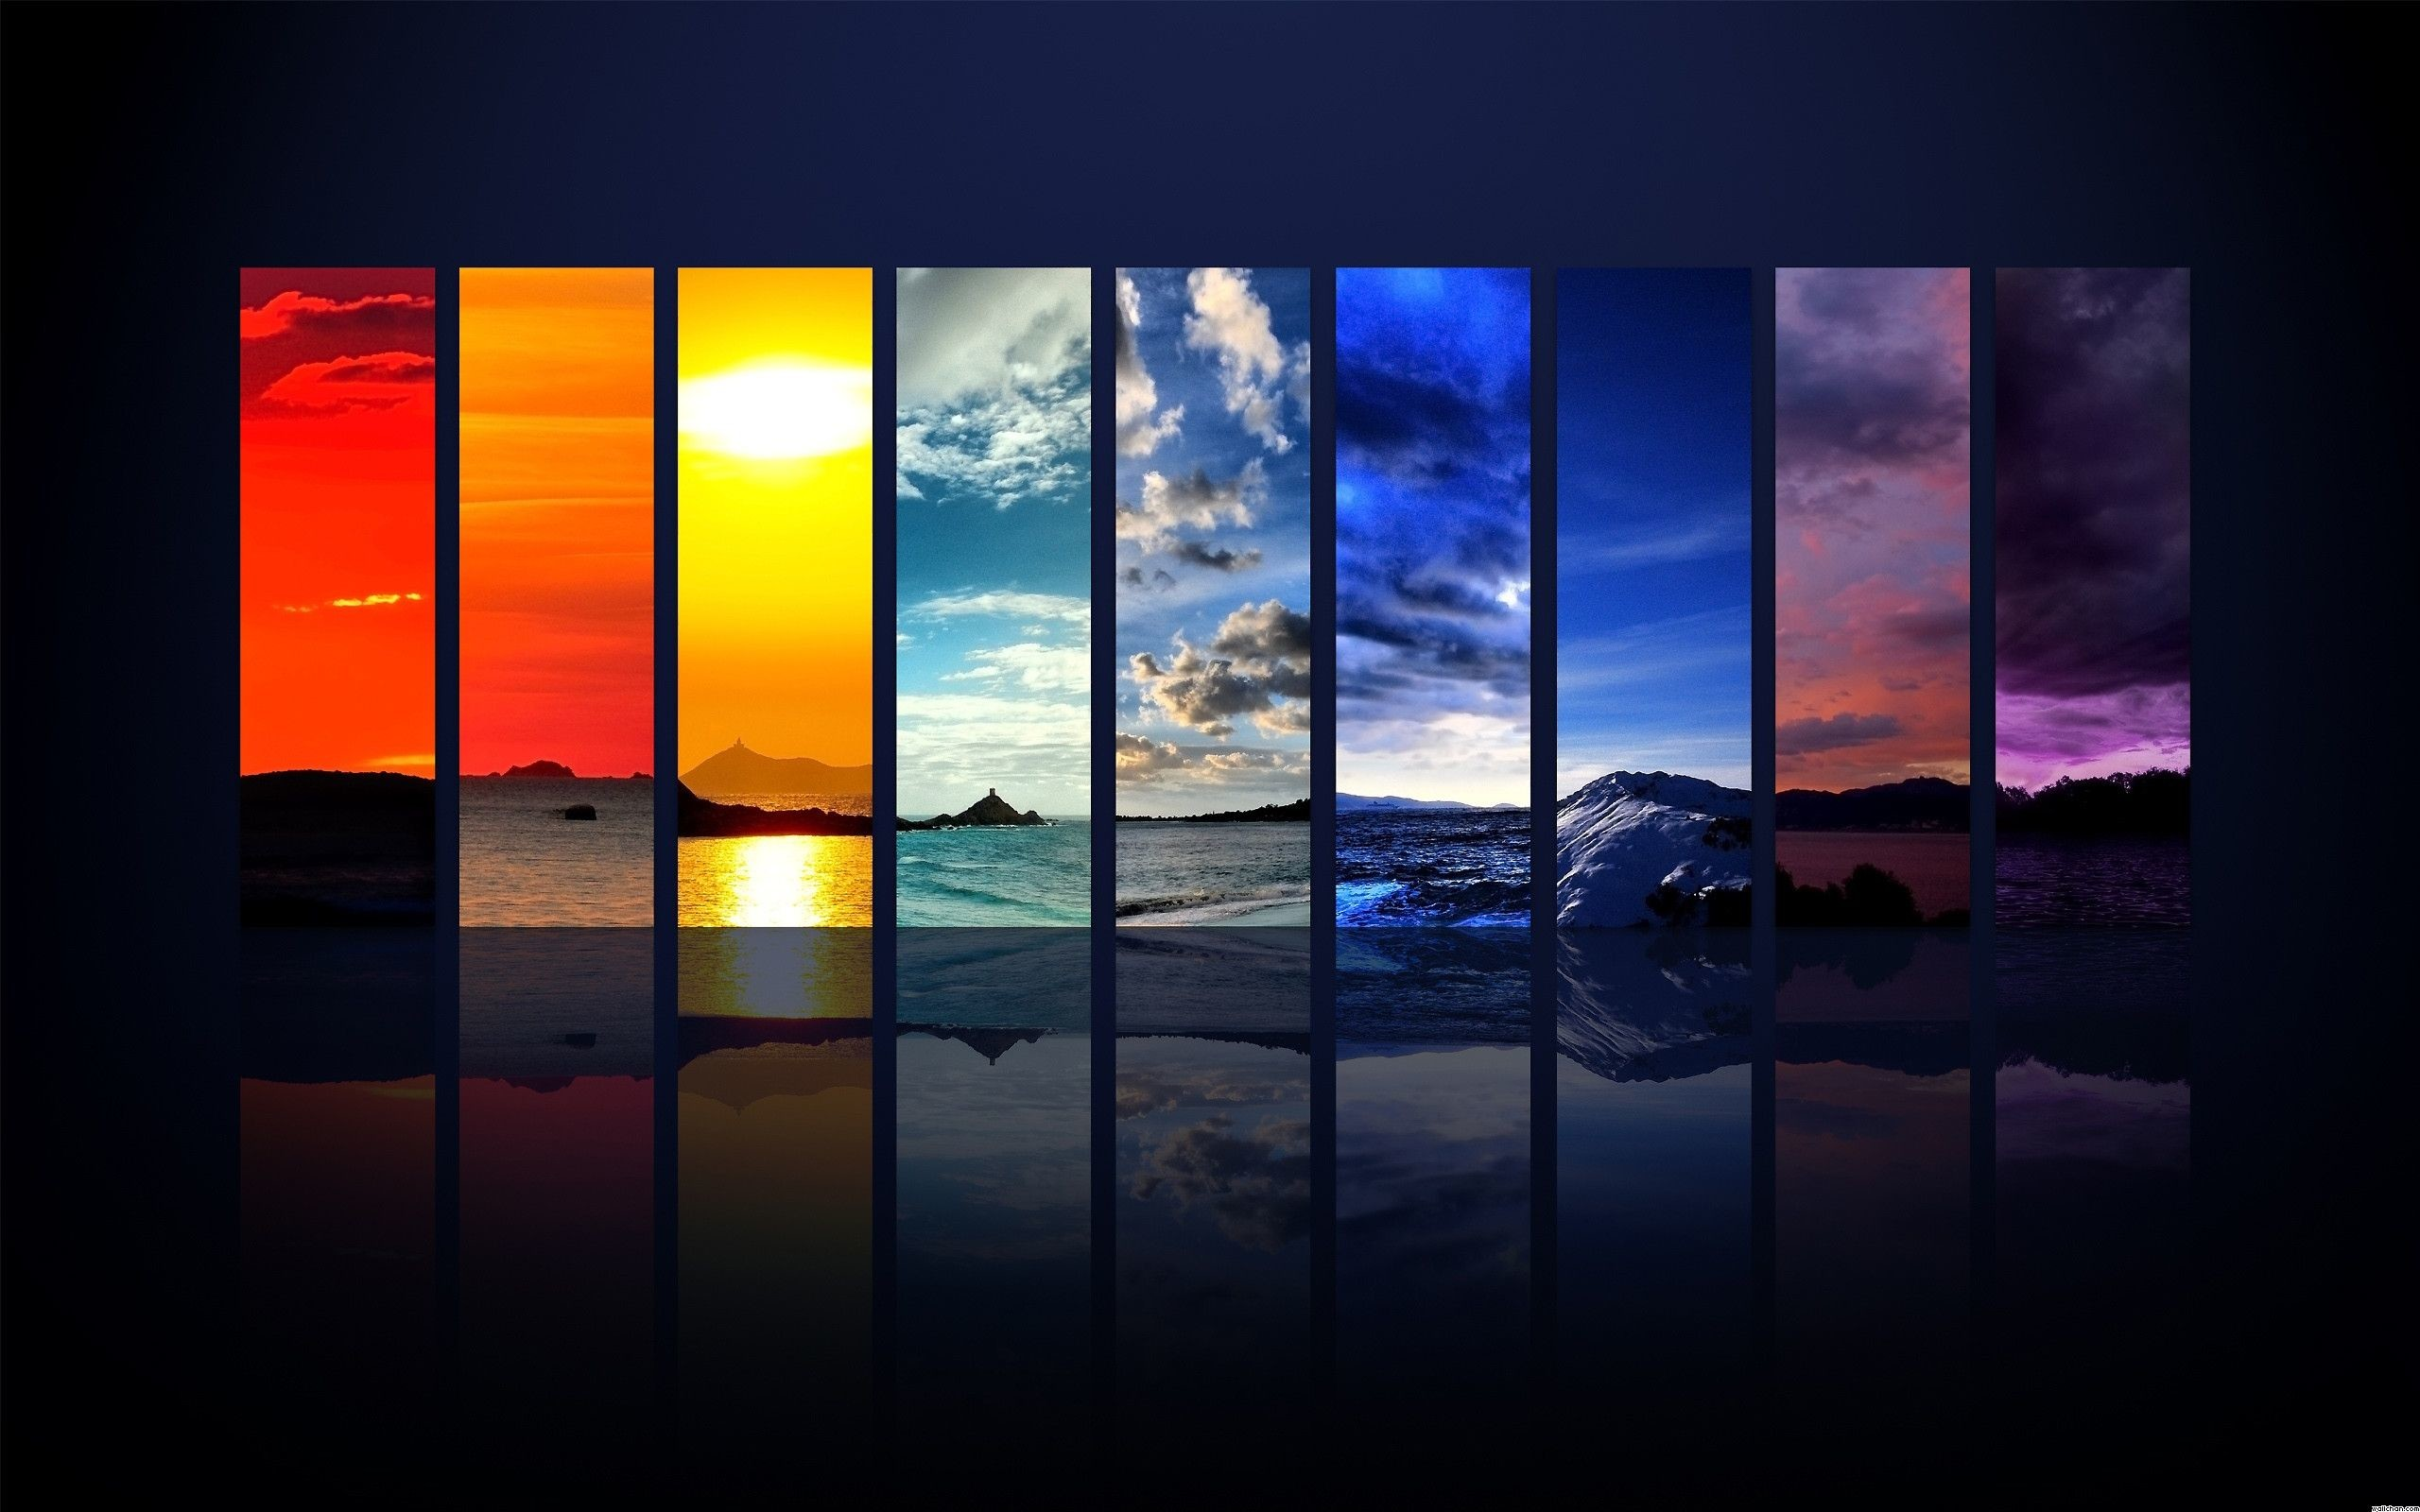 2560x1600 Breathtaking Abstract Rainbow Wallpapers | HD Wallpapers | Pinterest | Rainbow  wallpaper and Wallpaper